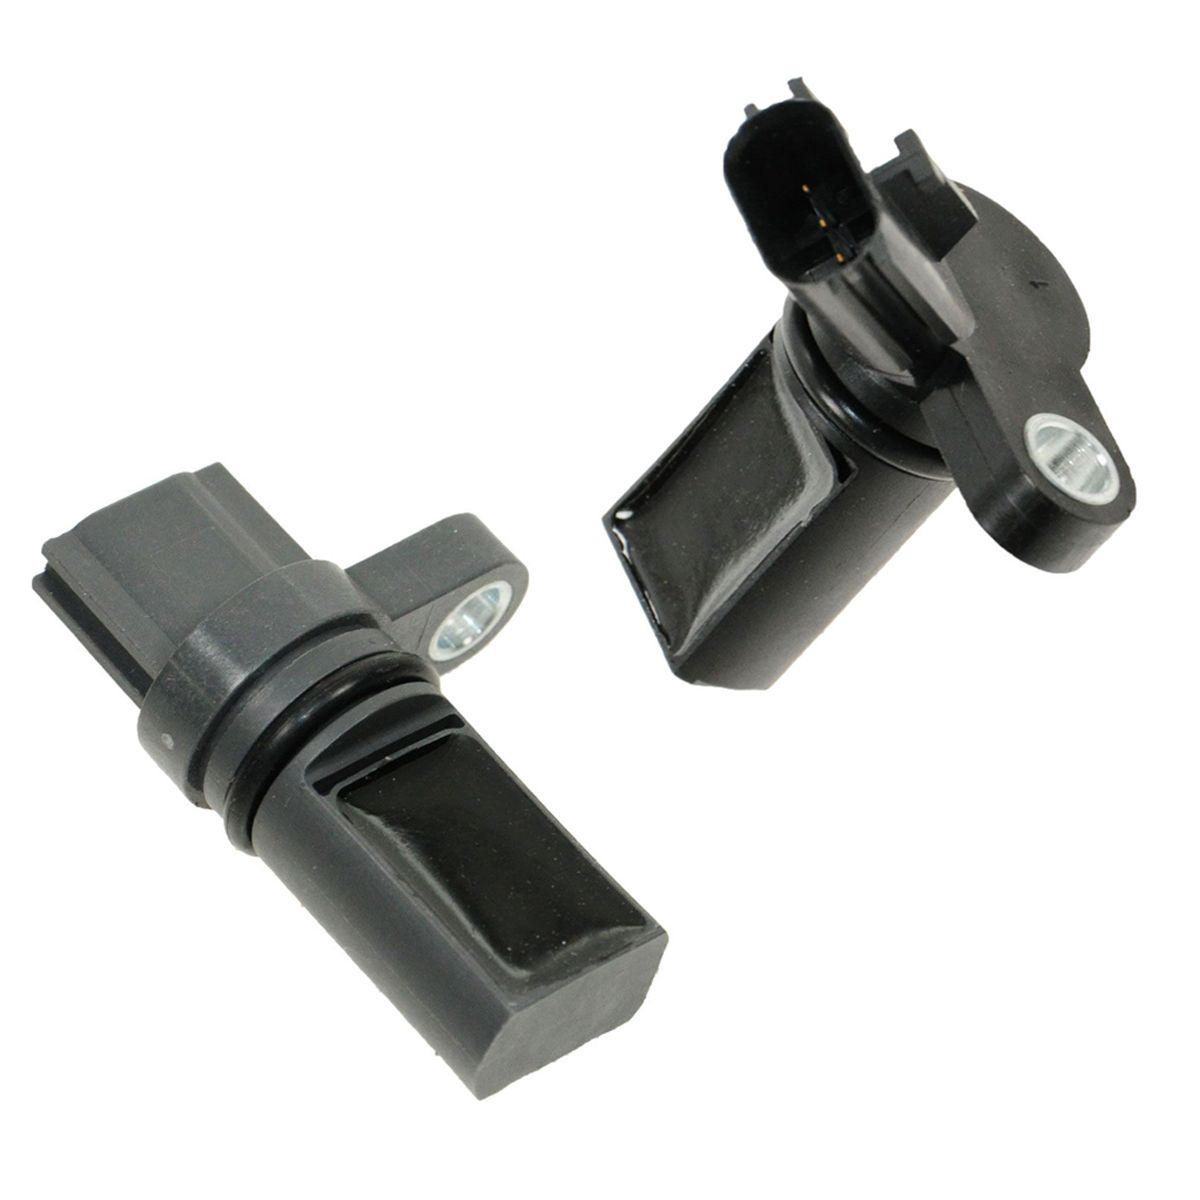 Details about Camshaft Cam CMP Position Sensor LH & RH Kit Pair Set of 2  for Infiniti Nissan